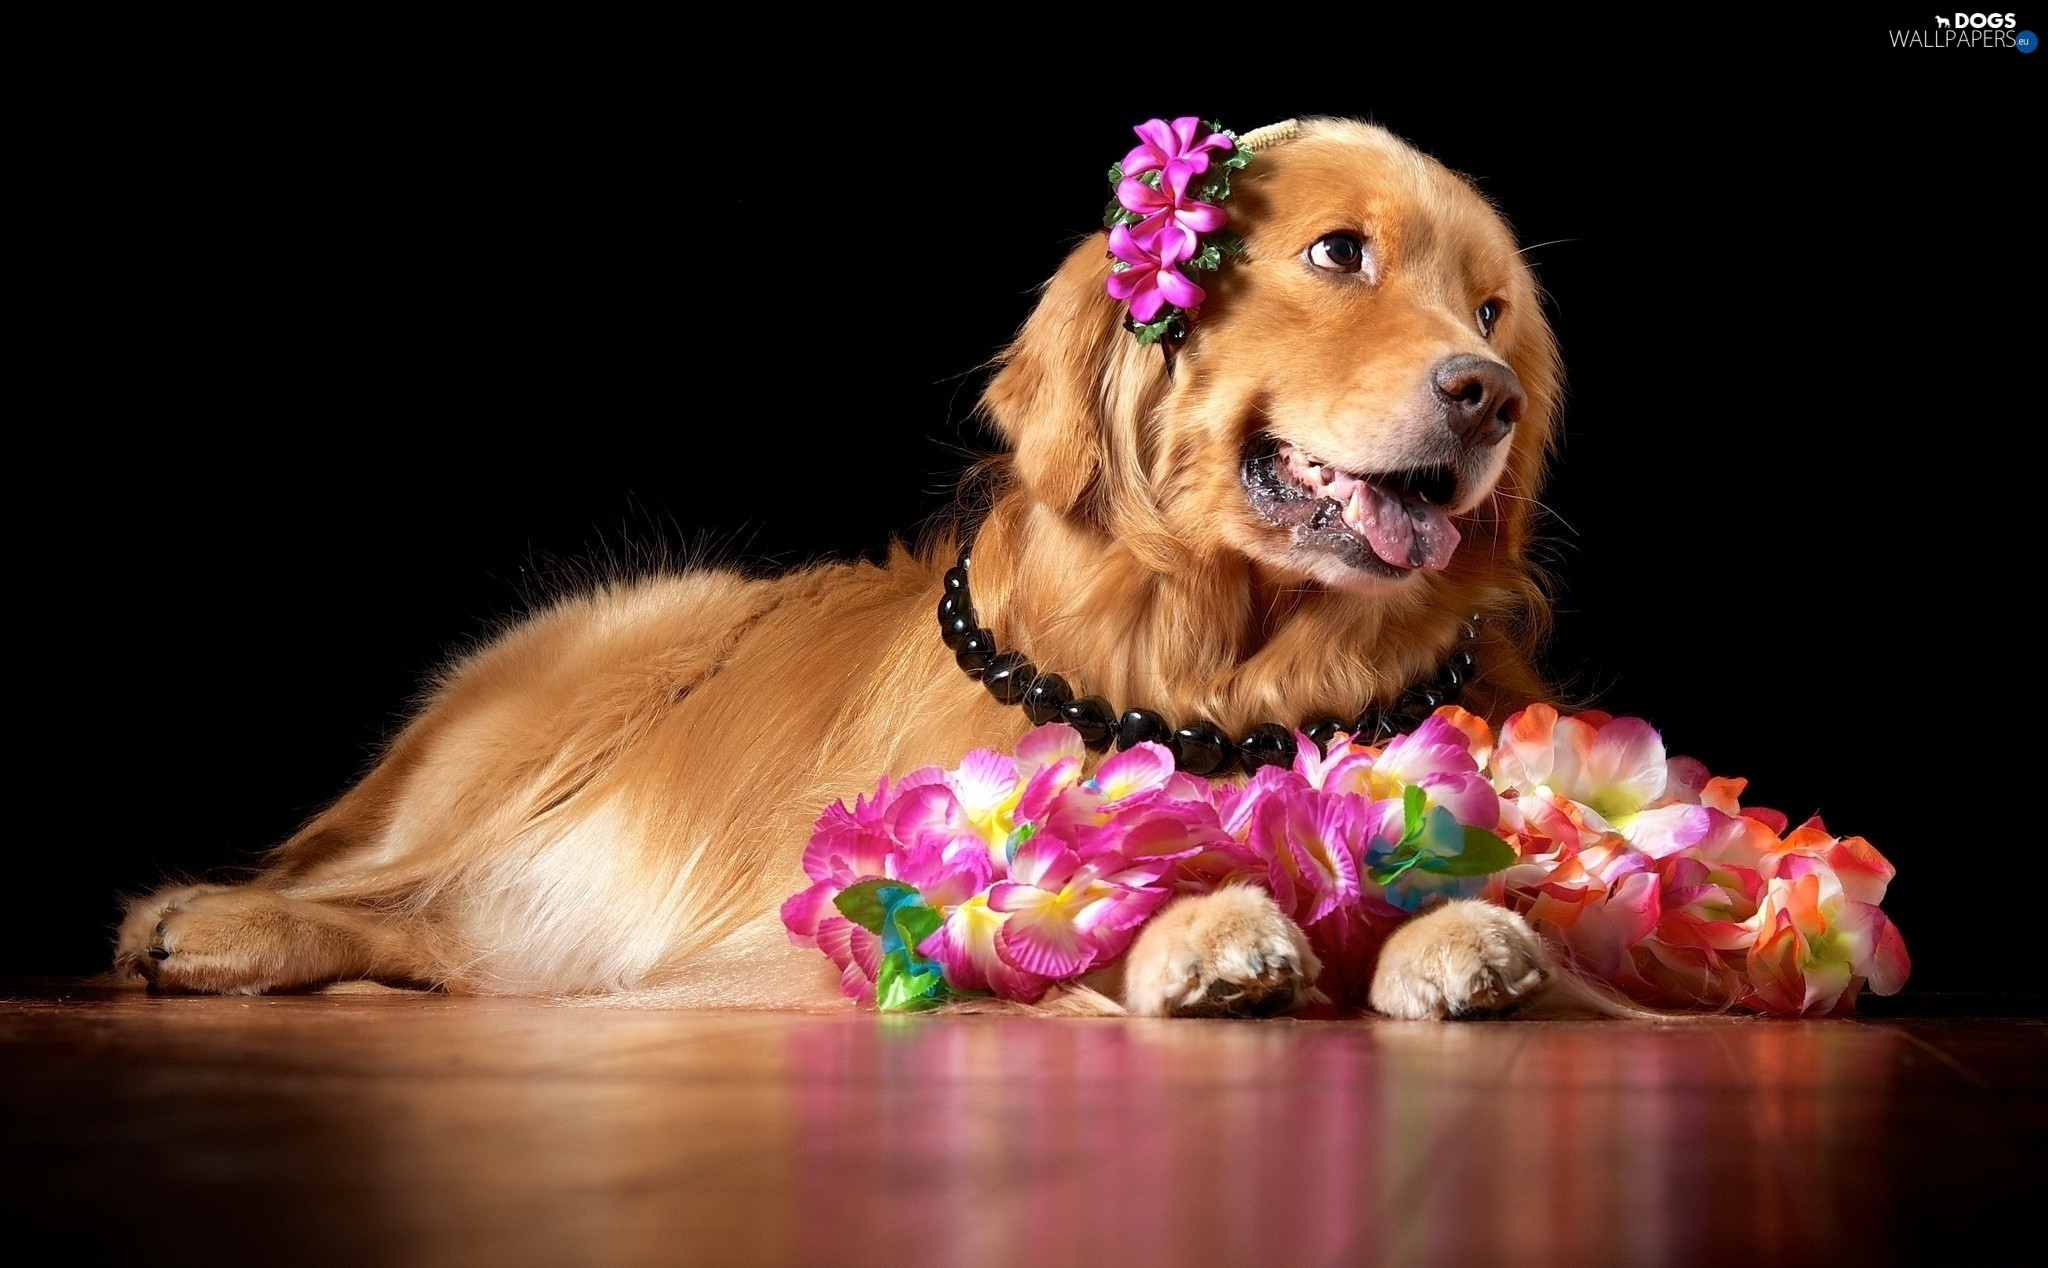 Flowers Golden Retriever Doggy Dogs Wallpapers 2048x1268